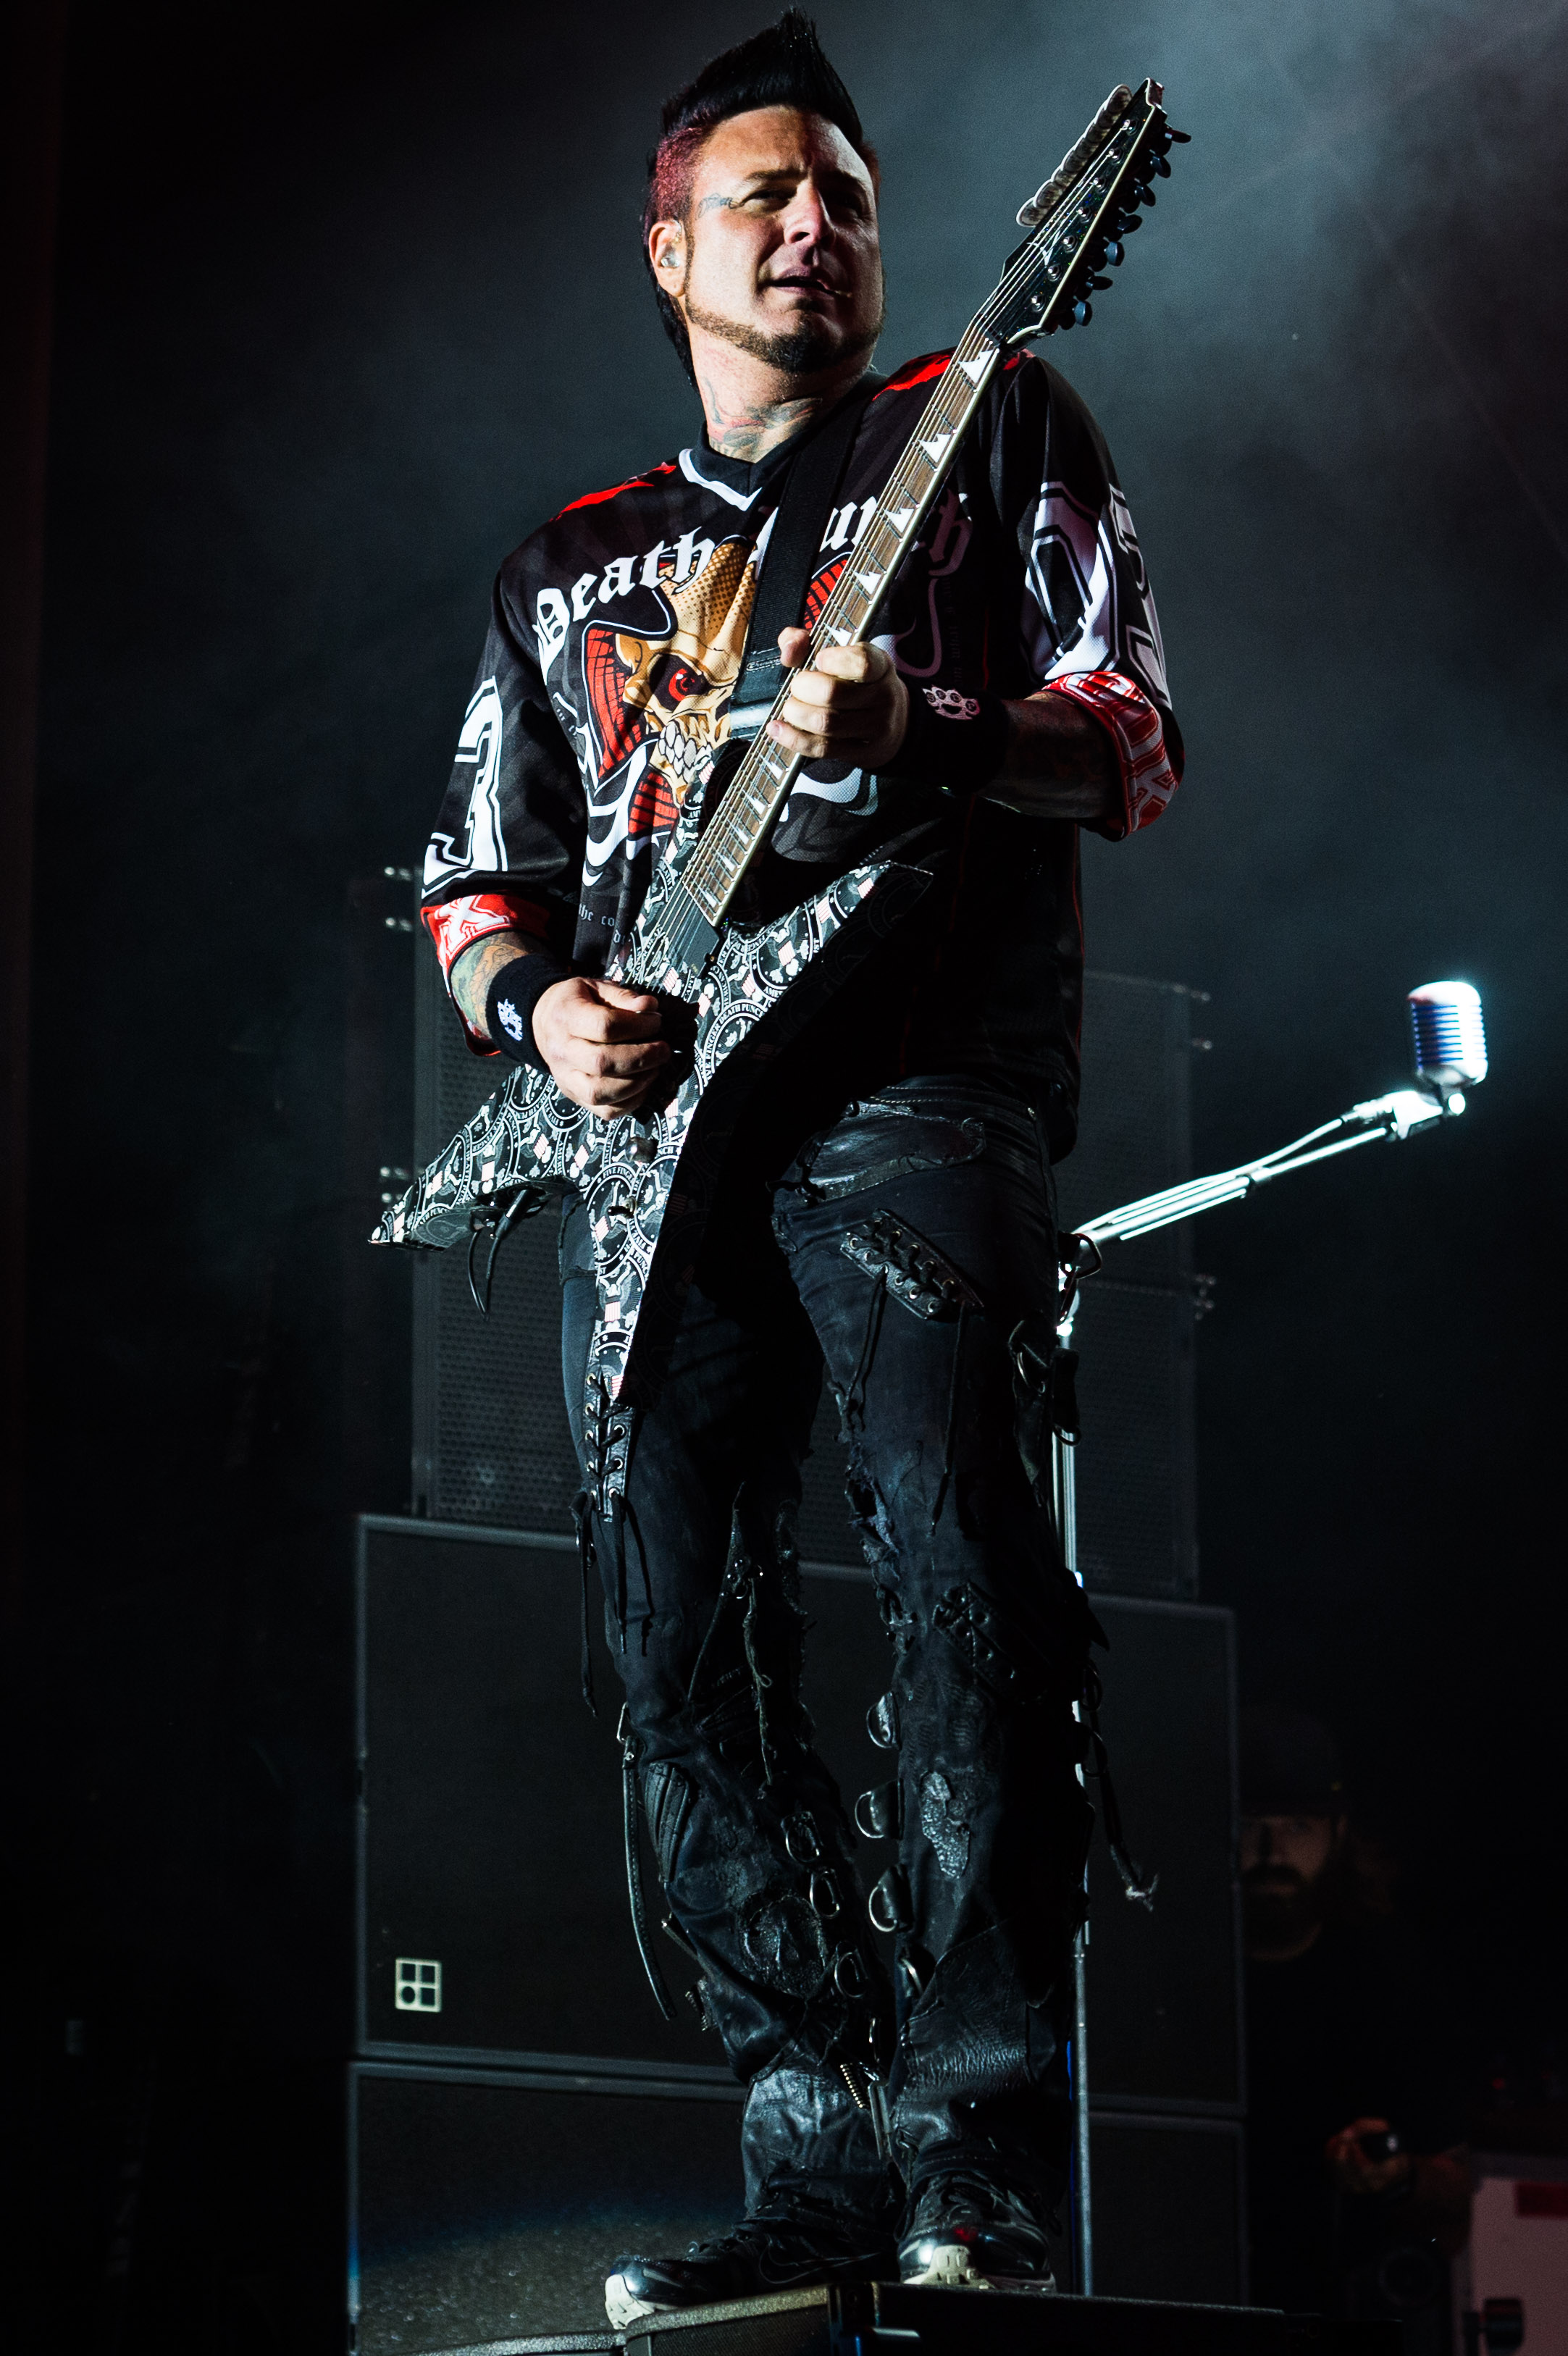 Five Finger Death Punch Sep 30 2017-33.jpg